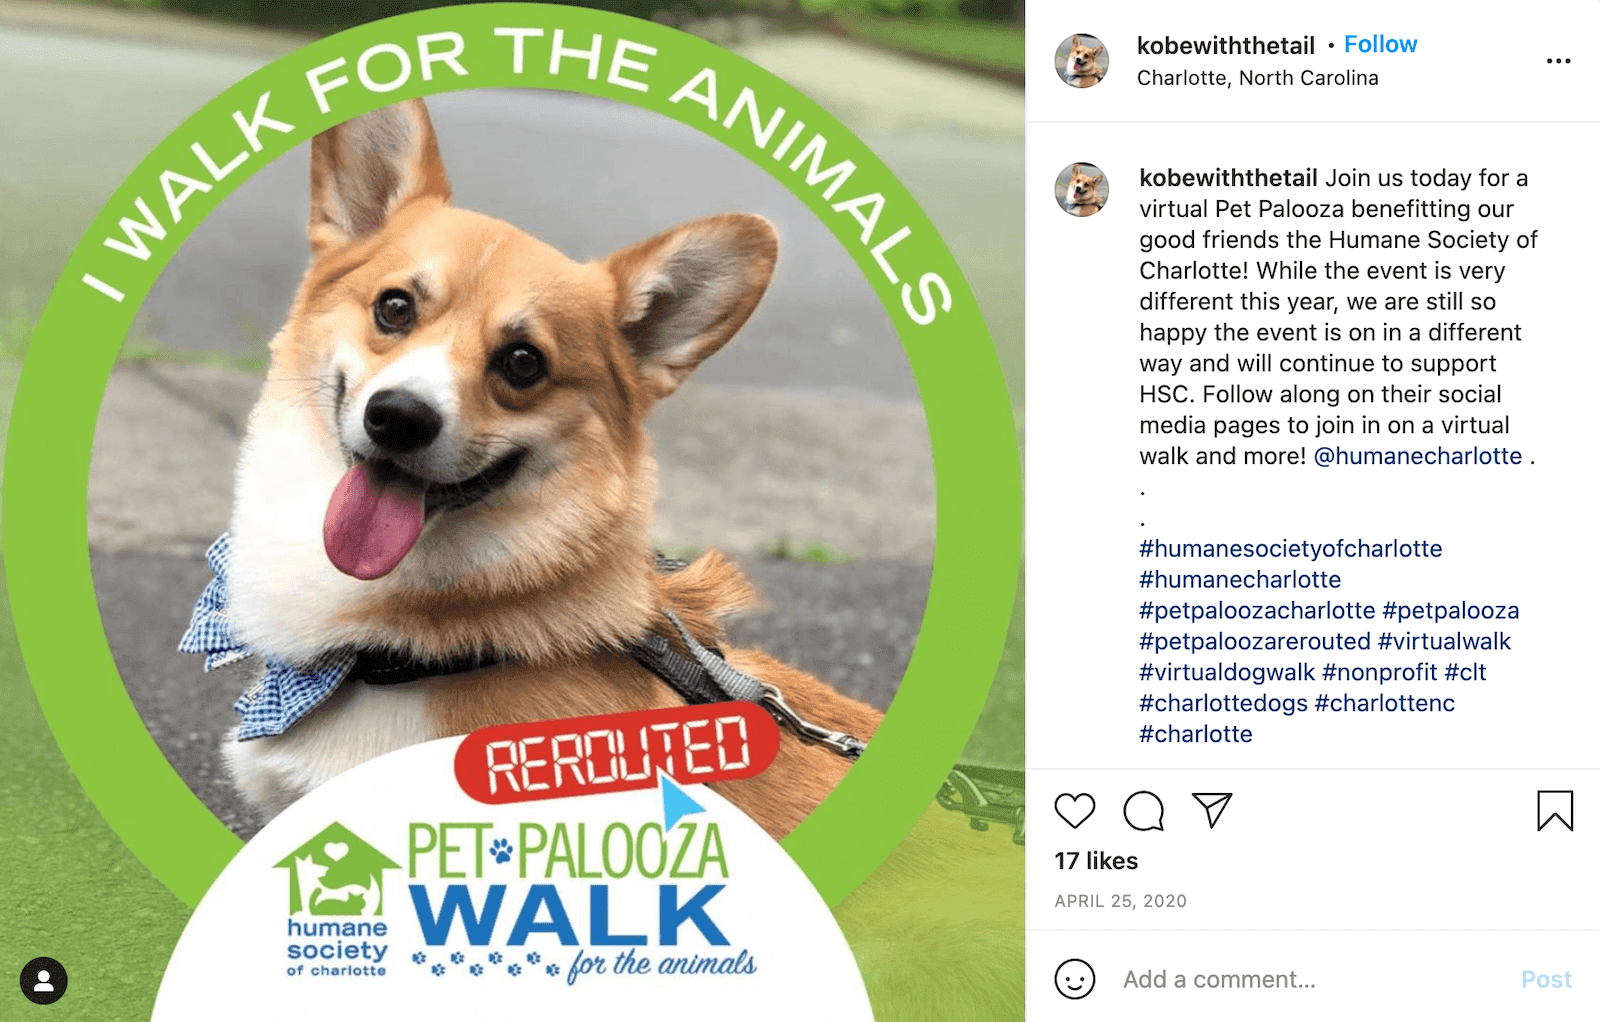 """Instagram post by user @kobewiththetail shows a photo of a smiling corgi with blue-and-white gingham bow tie within a social media frame for Pet Palooza Rerouted that says """"I walk for the animals"""".  The caption reads: Join us today for a virtual Pet Palooza benefitting our good friends the Humane Society of Charlotte! While the event is very different this year, we are still so happy the event is on in a different way and will continue to support HSC. Follow along on their social media pages to join in on a virtual walk and more! @humanecharlotte . . . #humanesocietyofcharlotte #humanecharlotte #petpaloozacharlotte #petpalooza #petpaloozarerouted #virtualwalk #virtualdogwalk #nonprofit #clt #charlottedogs #charlottenc #charlotte. Example of how to promote your hybrid event."""